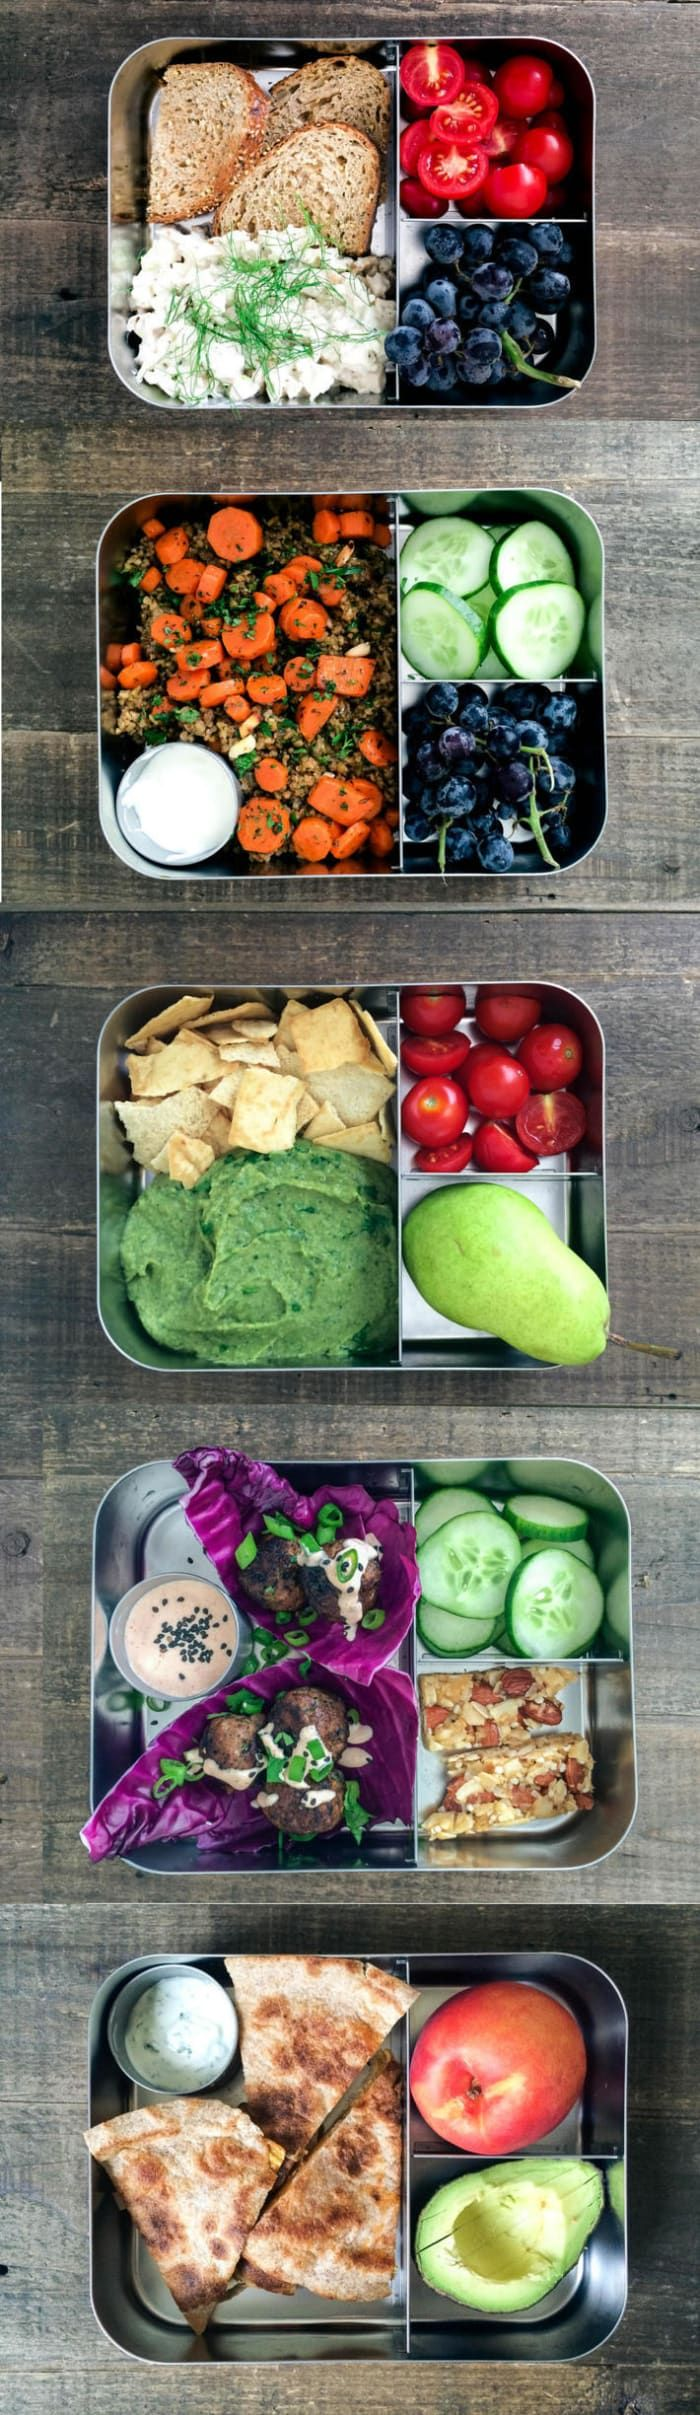 We love this five-day meal plan.